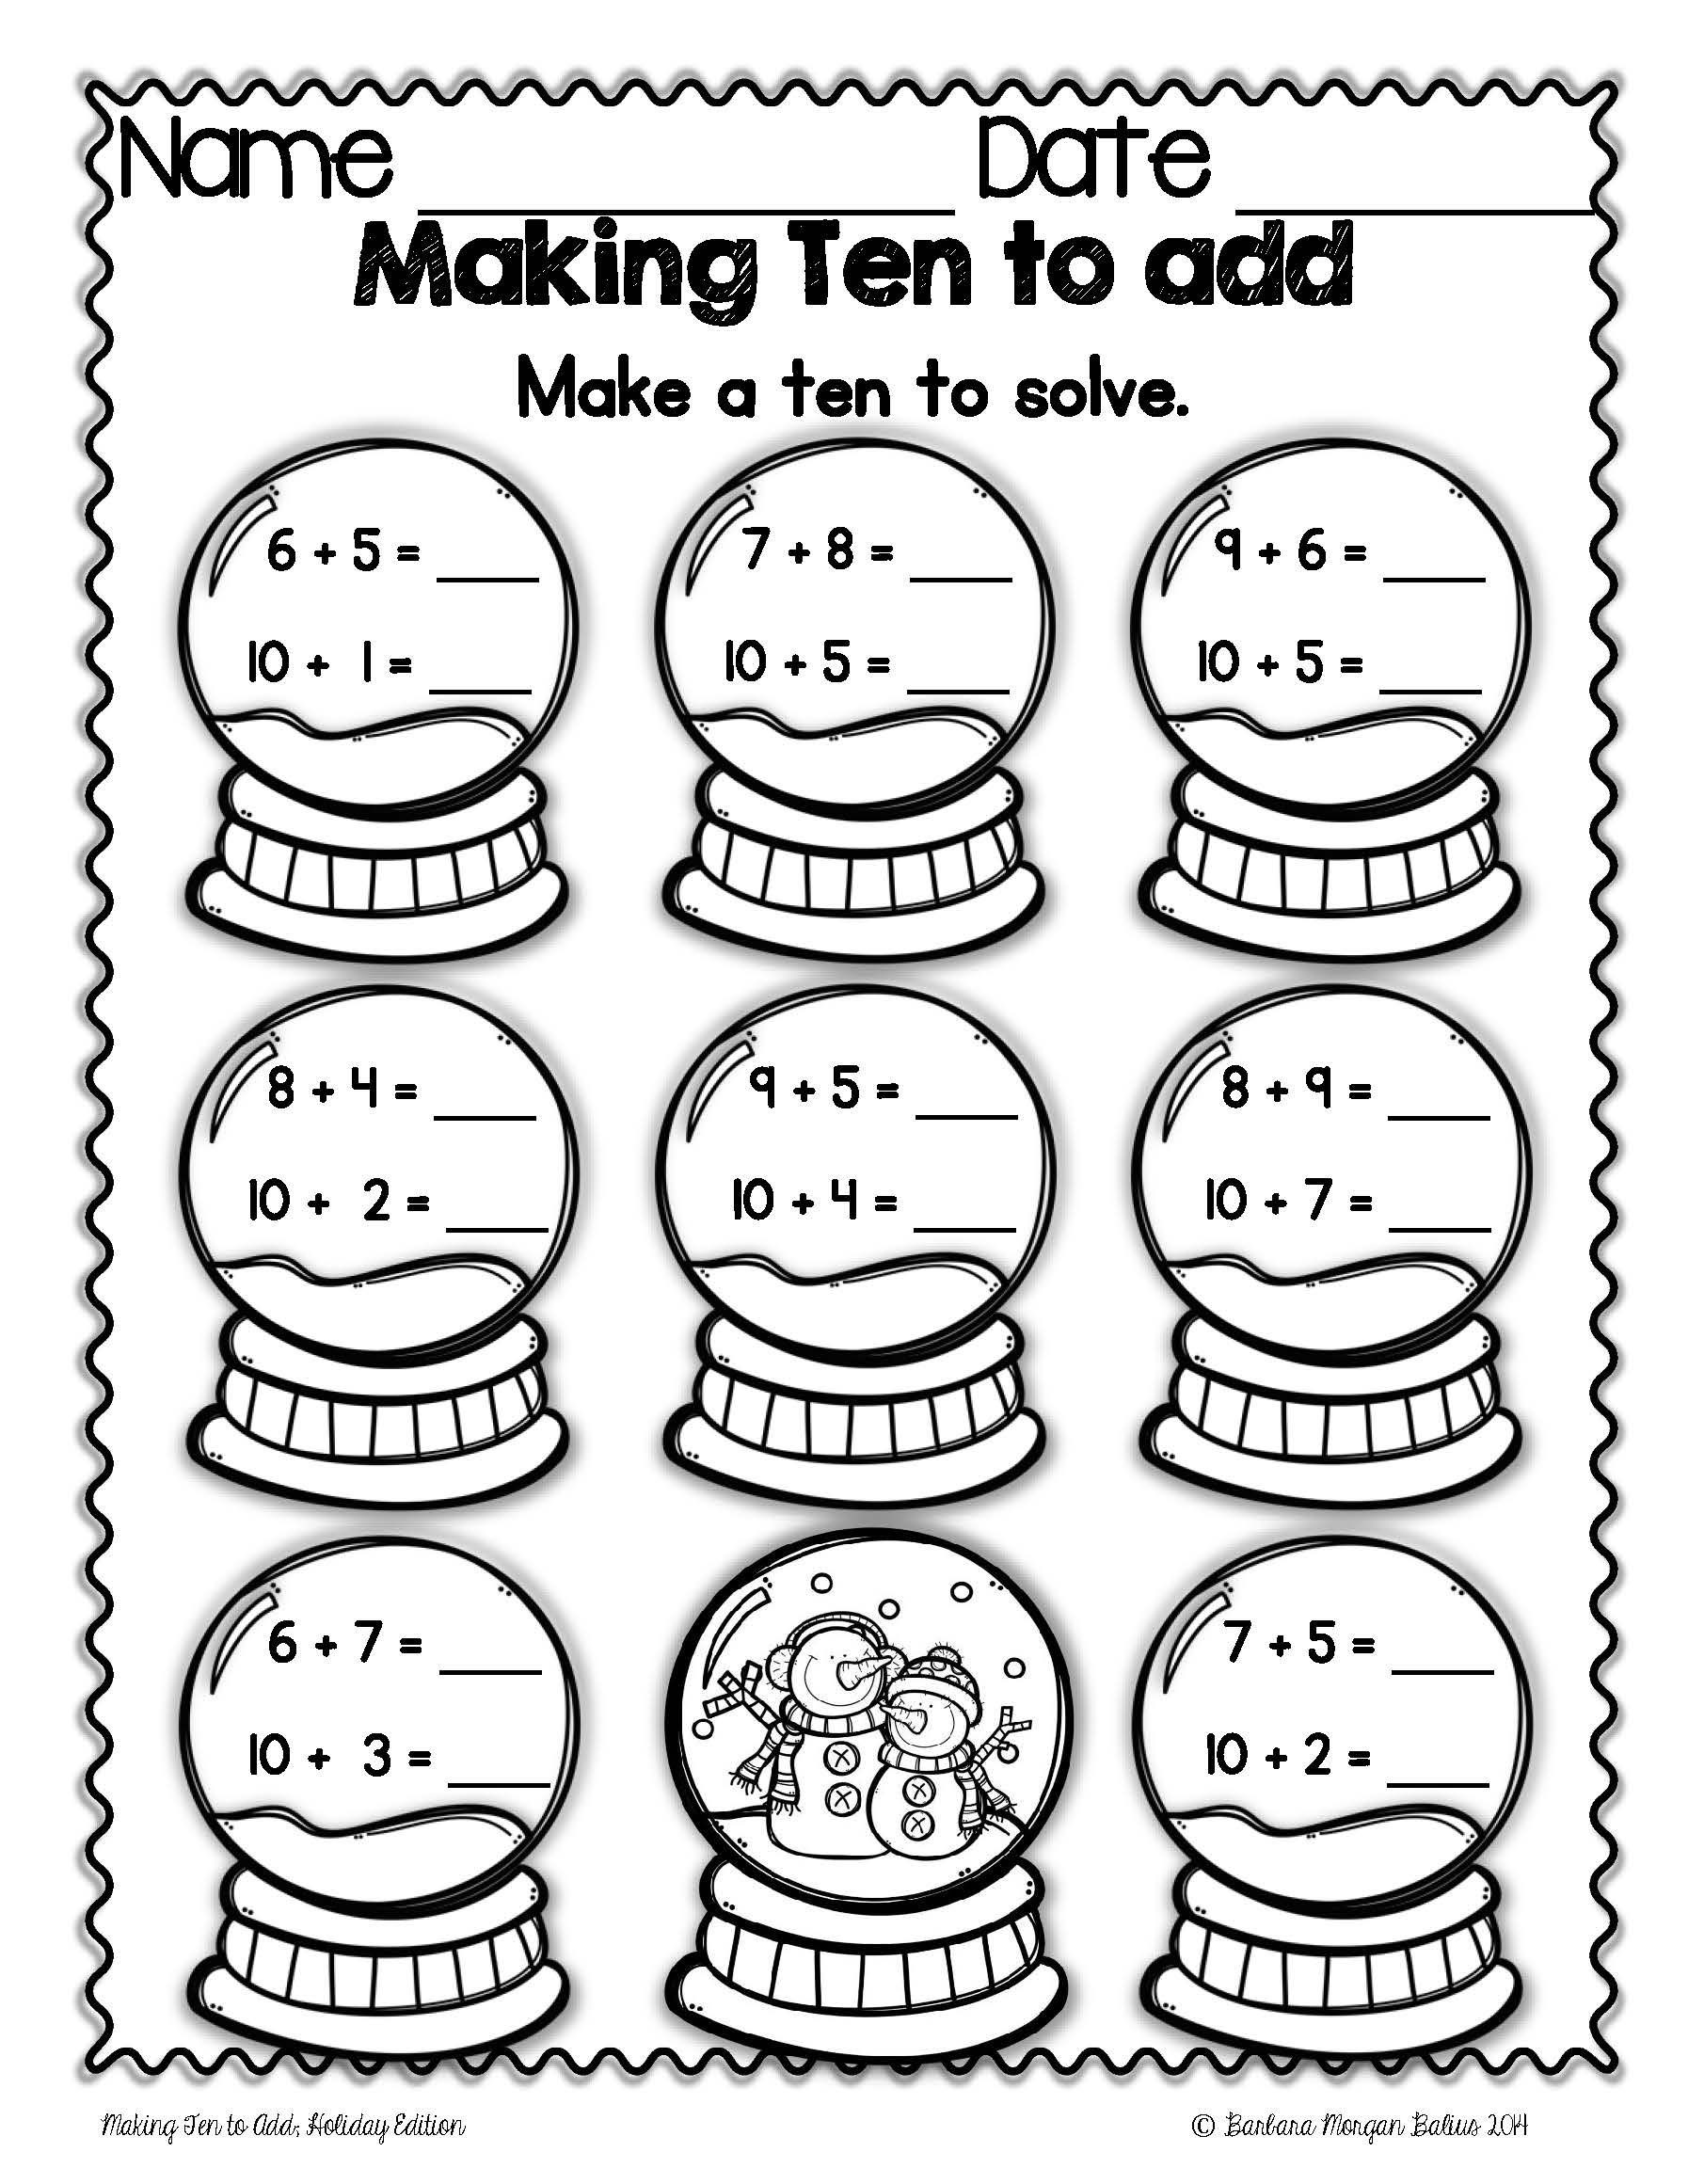 Repeated Addition Worksheets 2nd Grade Christmas Math Making Ten to Add Mega Holiday Practice 1 Oa